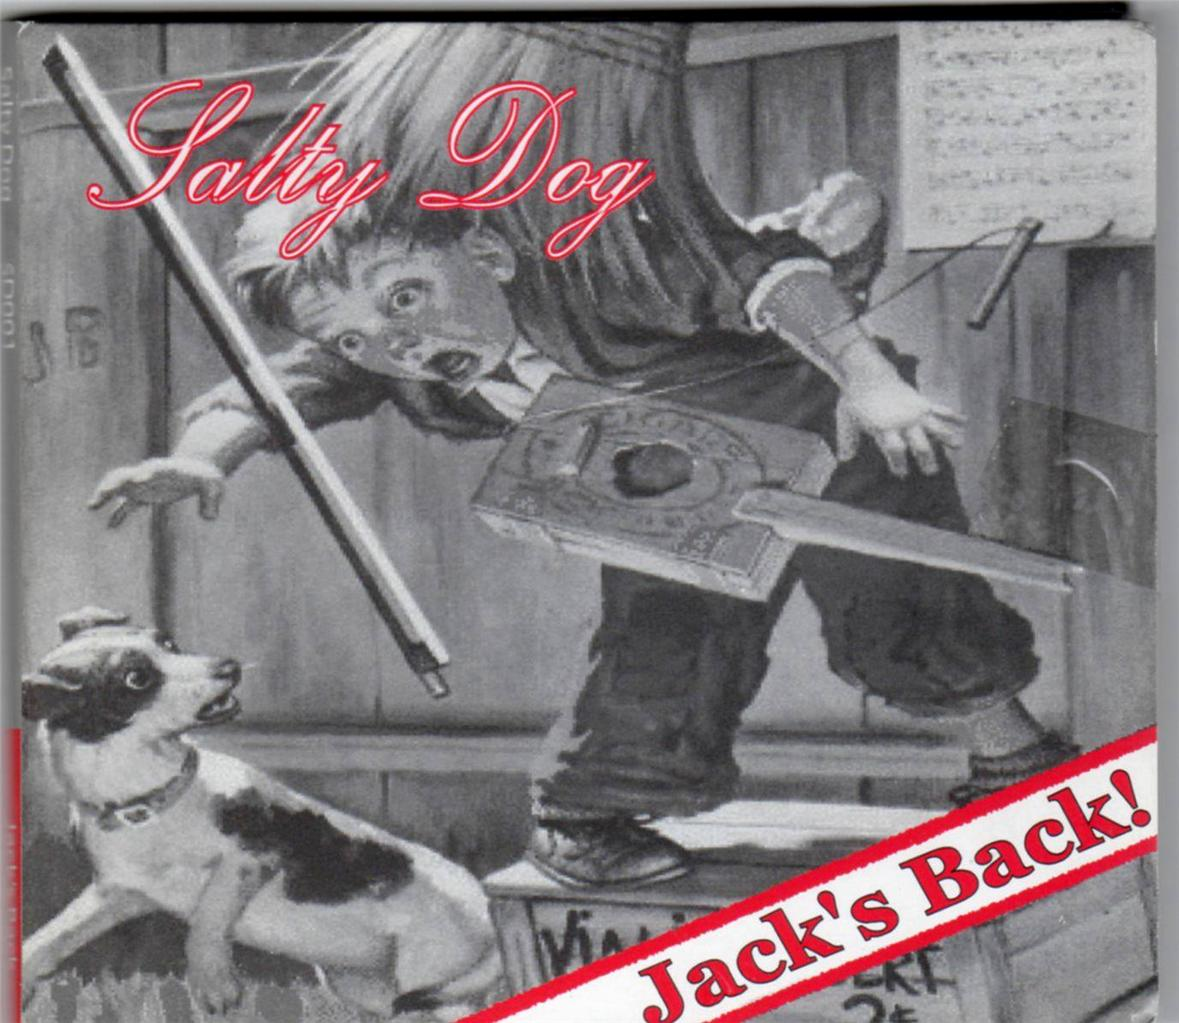 SALTY-DOG-Jacks-Back-CD-Excellent-Condition